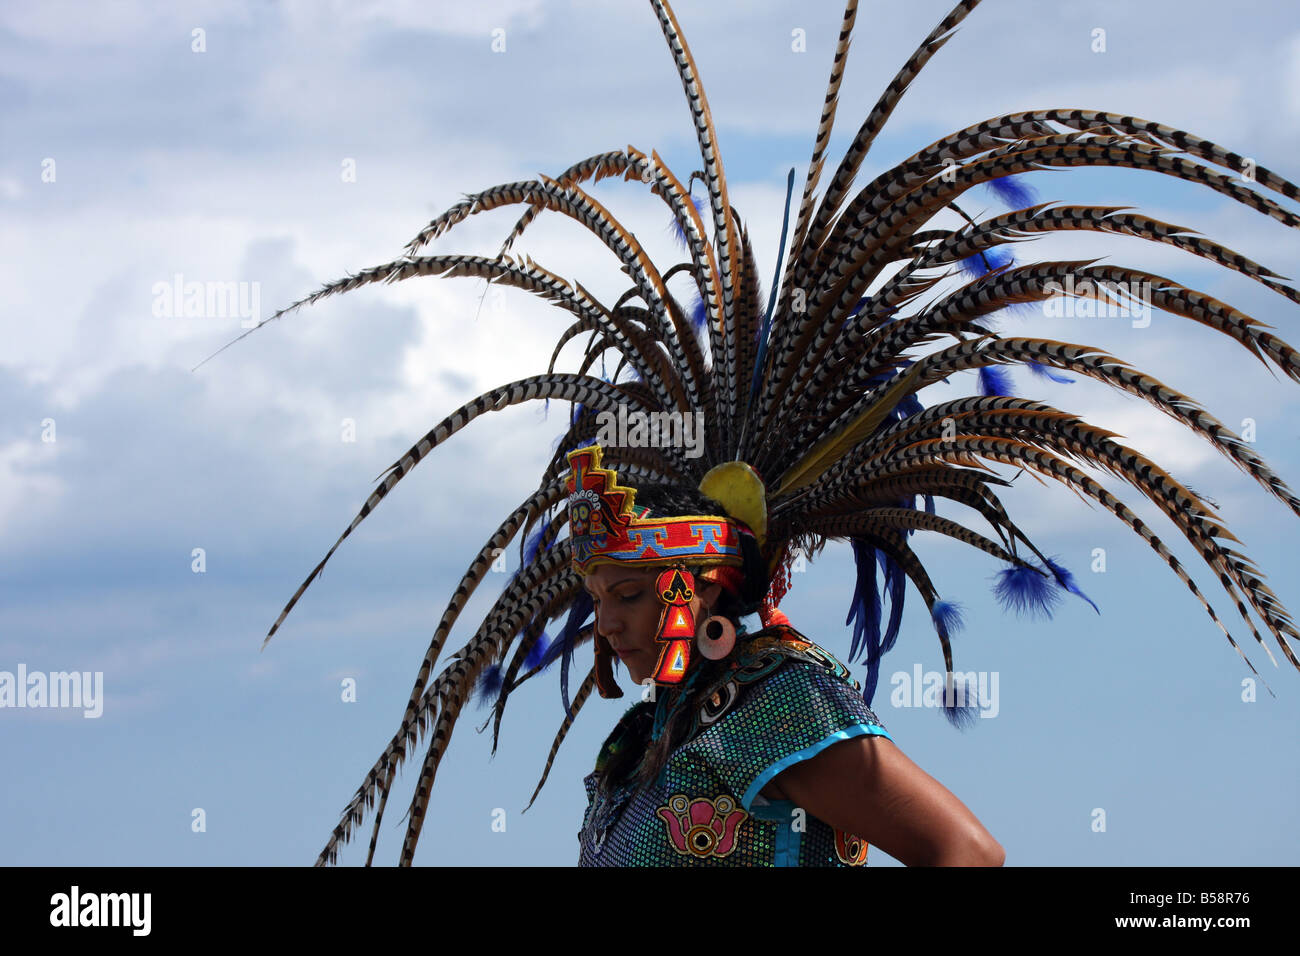 An Incan South American Indian in a fancy feather headdress at the Milwaukee Lakefront Indian Summer Festival Wisconsin - Stock Image